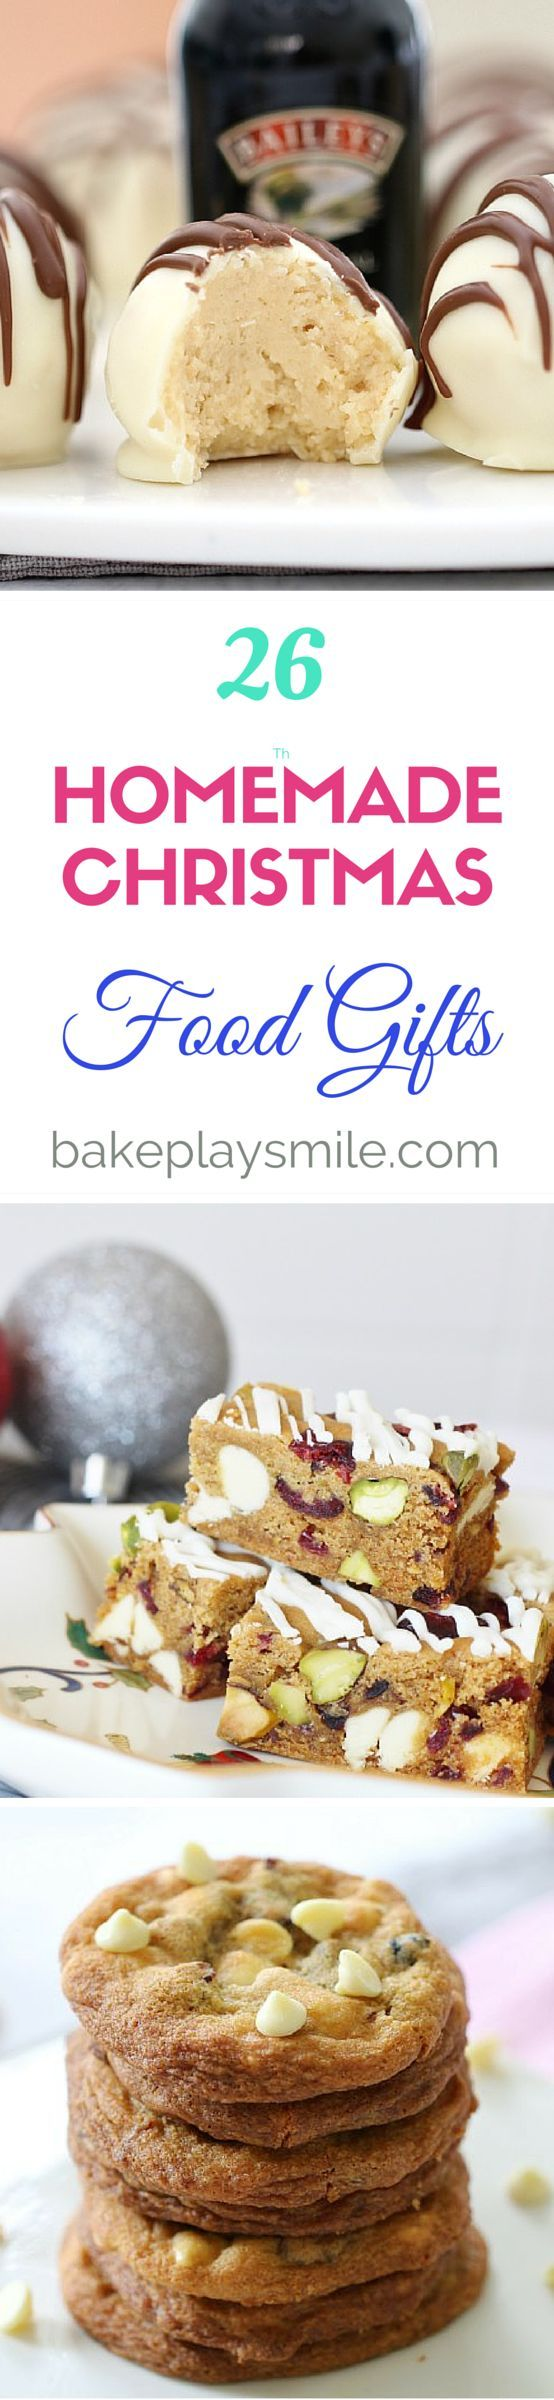 Homemade christmas food gifts pinterest diy food gifts food save yourself money by whipping up some of these thoughtful gifts for friends family neighbours and teachers christmas homemade diy food gifts solutioingenieria Choice Image